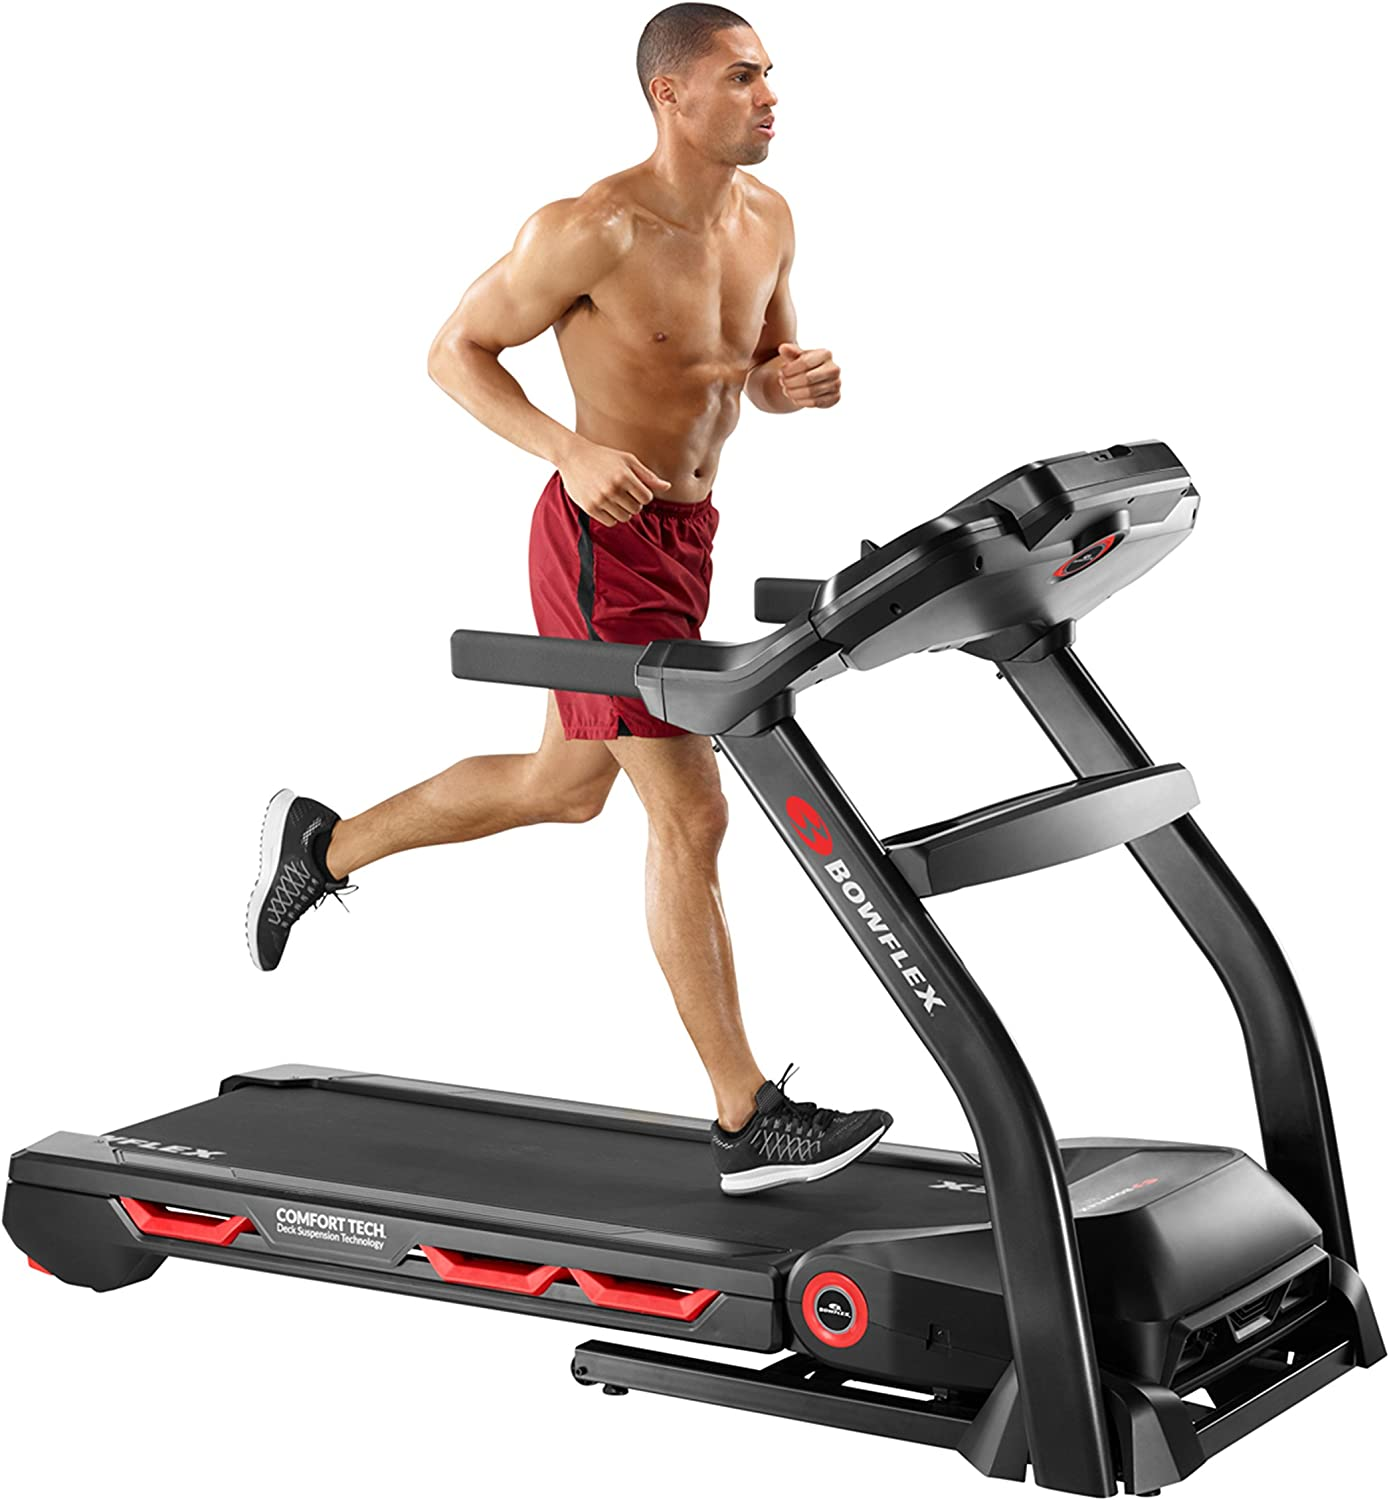 Best incline treadmill: Bowflex BXT216 Treadmill